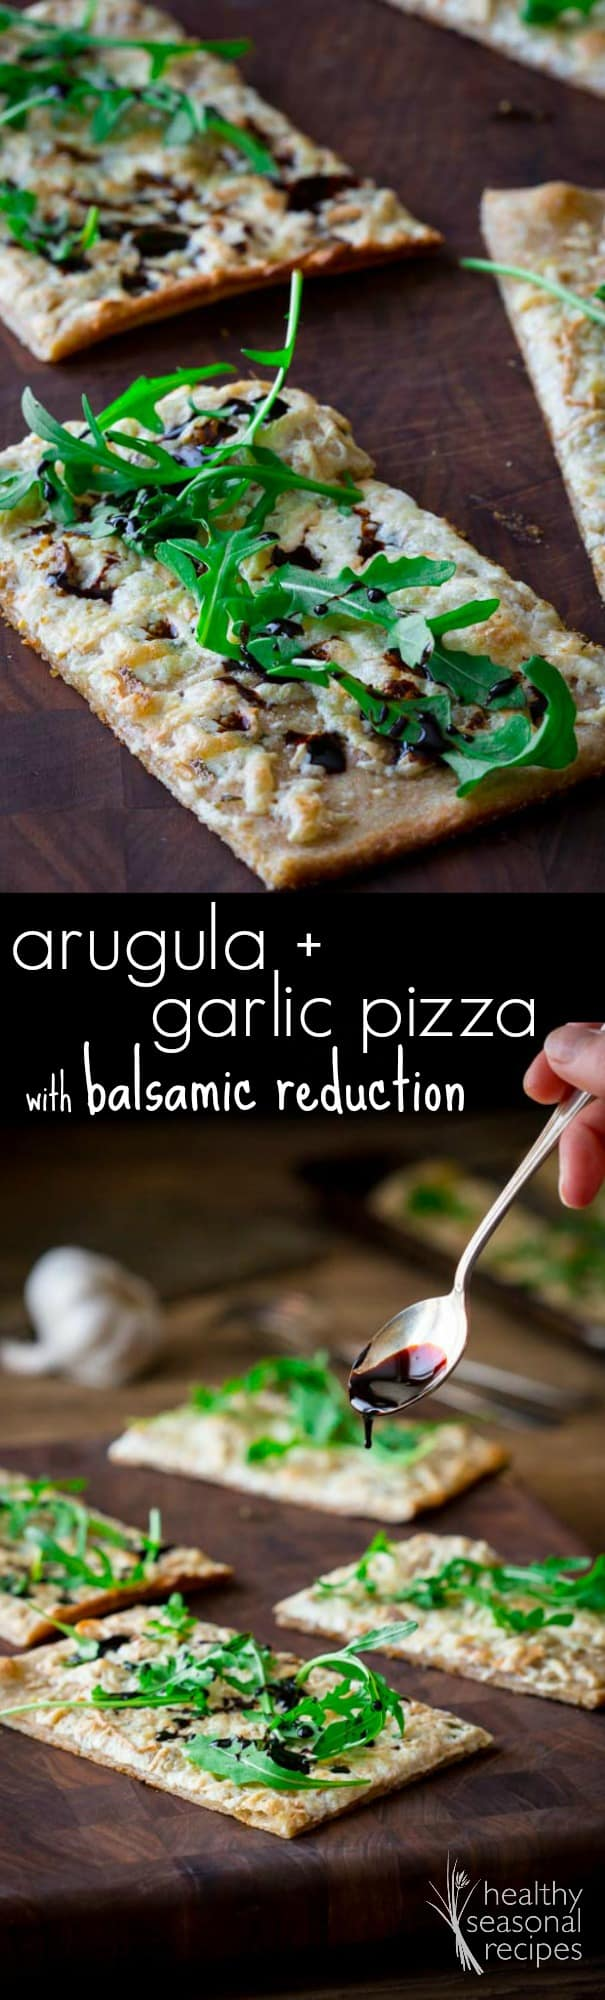 This garlic and arugula pizza with balsamic reduction takes 15 minutes to prep! Add rosemary and smoked cheese to this homemade pizza for more even flavor. #arugula #garlic #pizza #pizzarecipe #vegetarian #vegetarianrecipe #homemade #healthy #15minutes #fast #easy